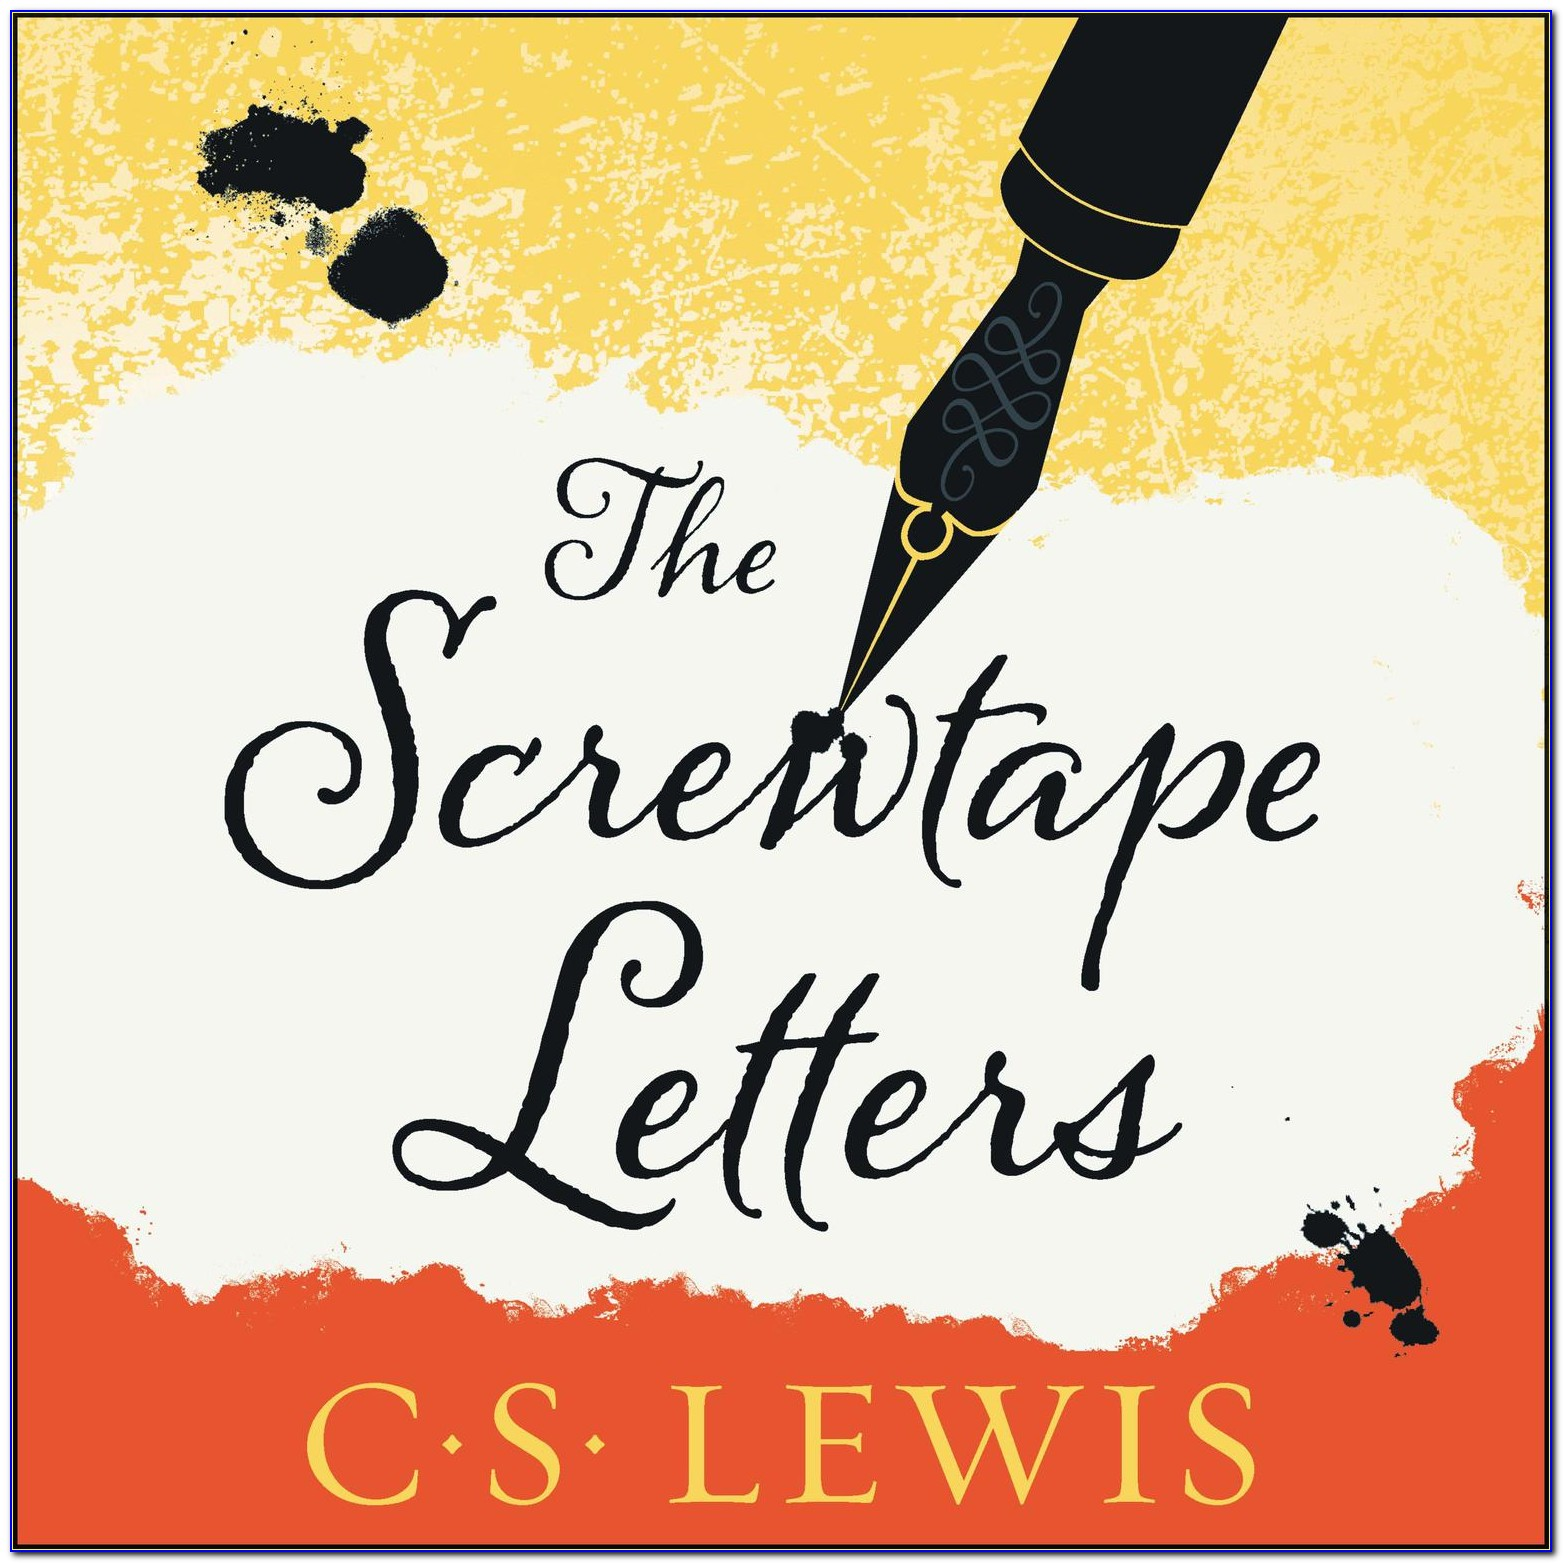 The Screwtape Letters Audiobook Free